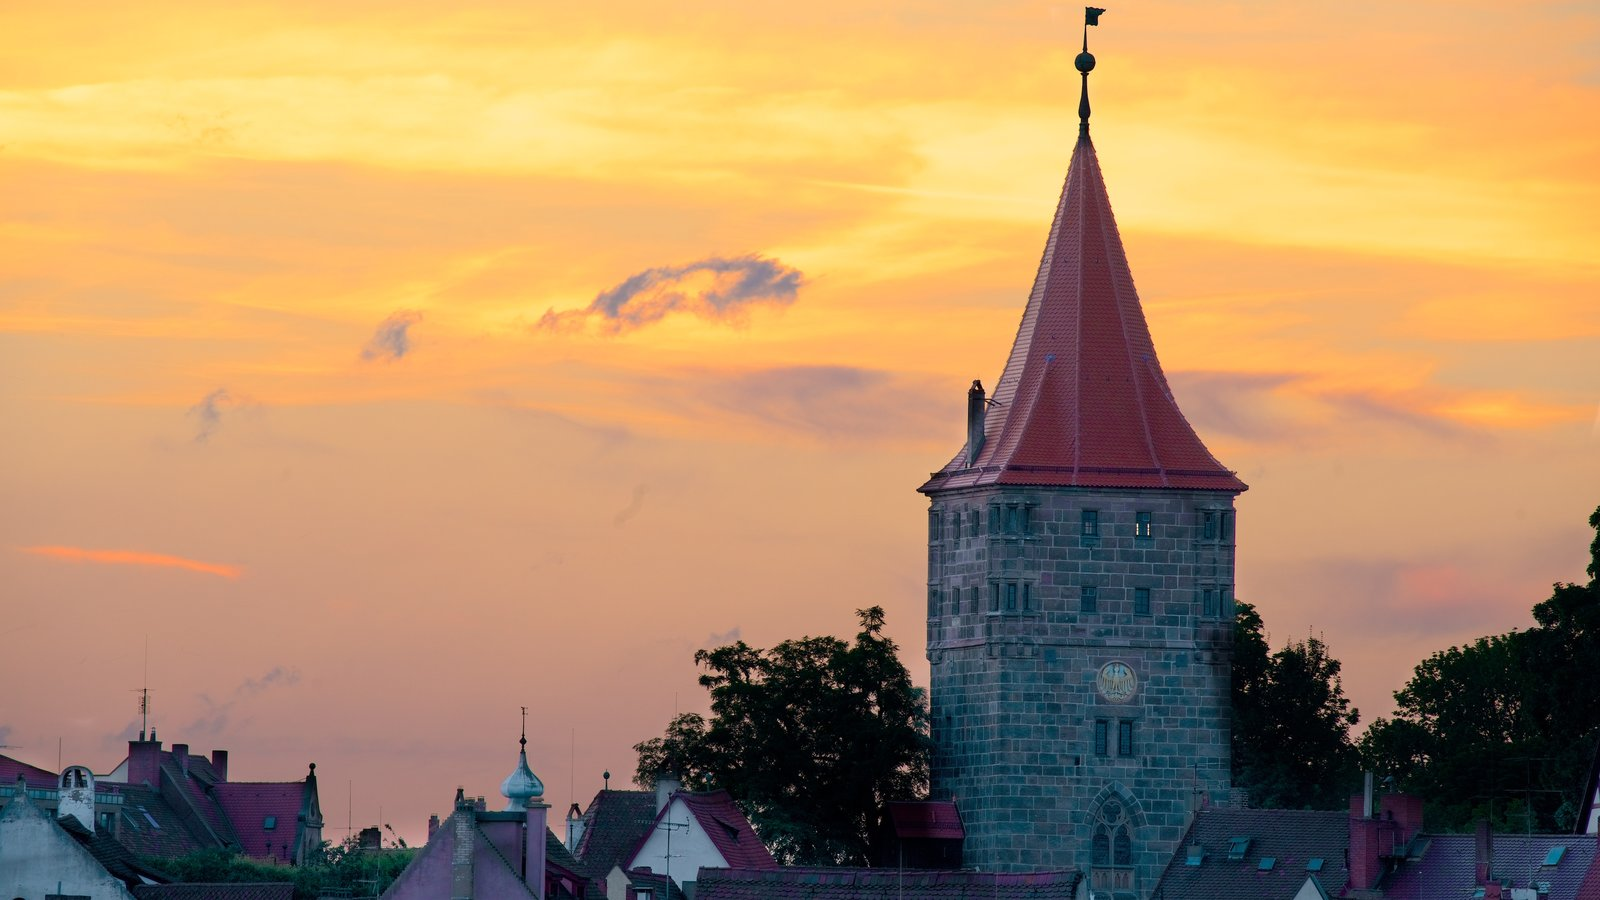 Nuremberg which includes heritage elements and a sunset